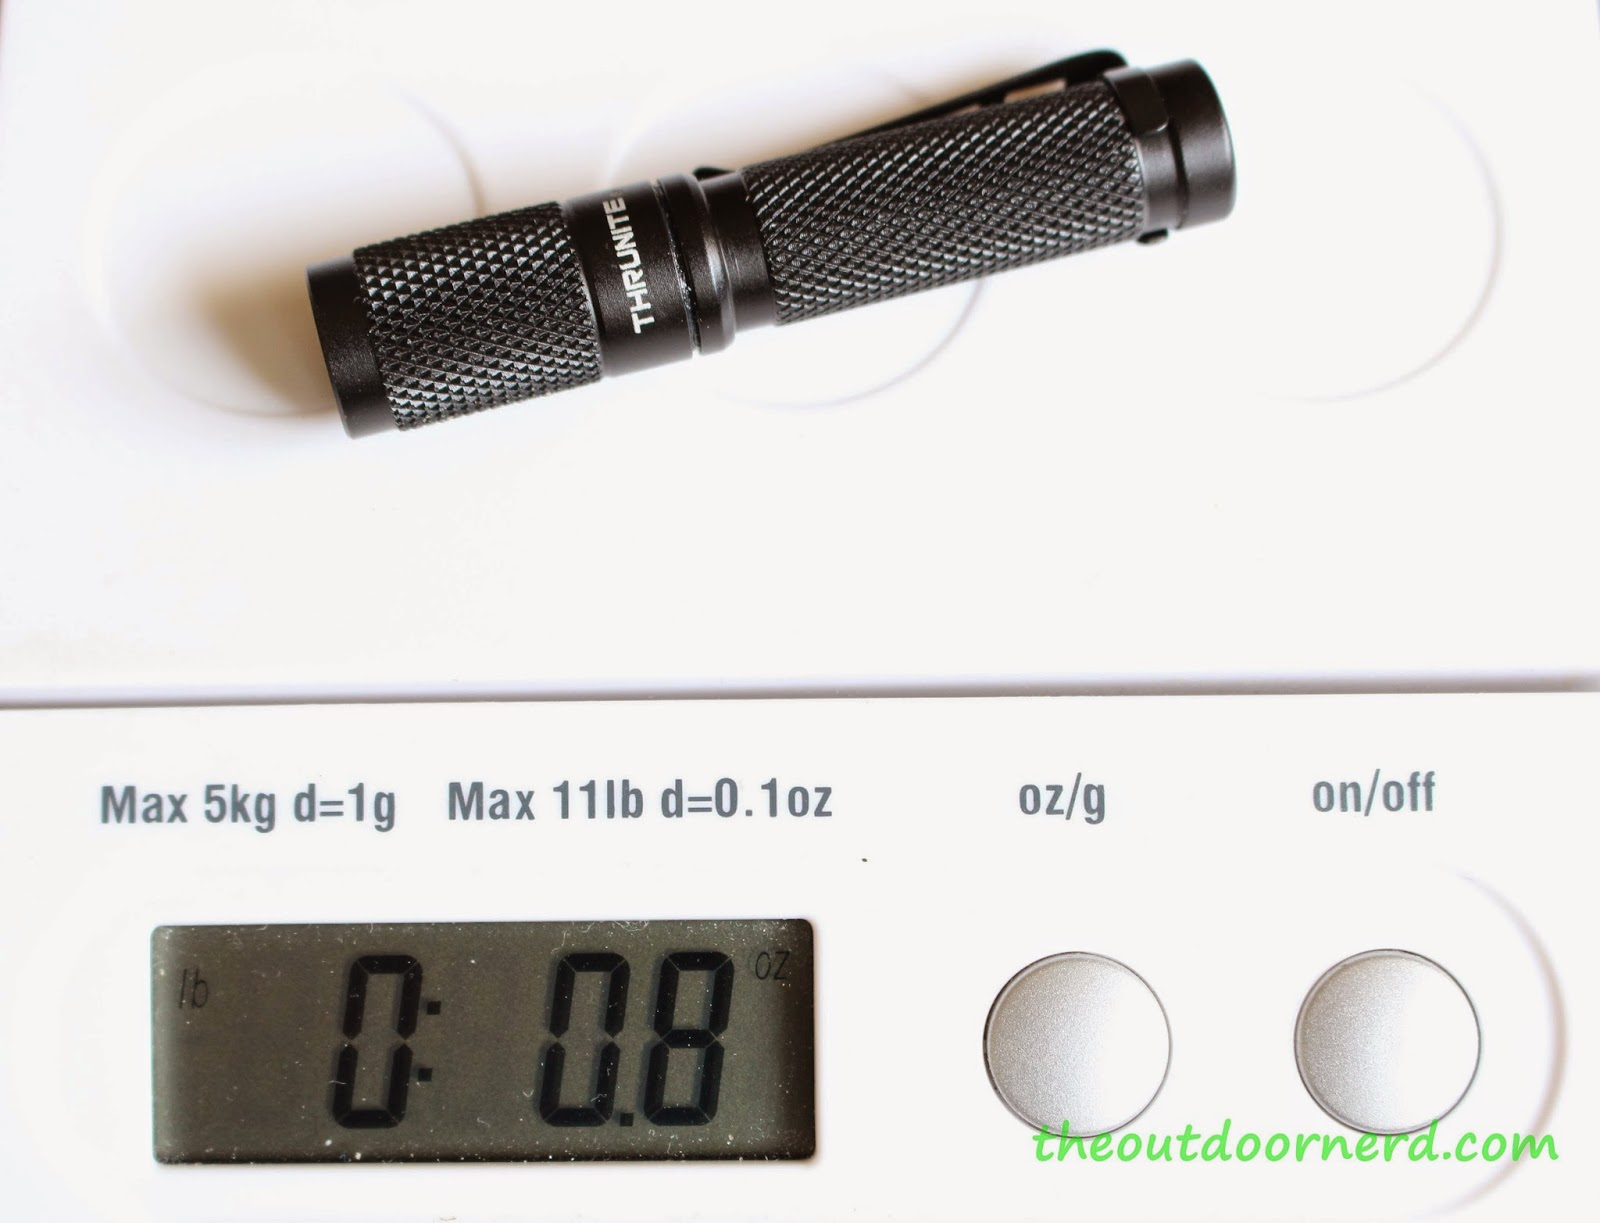 Thrunite Ti3 1xAAA EDC Flashlight: On Scale